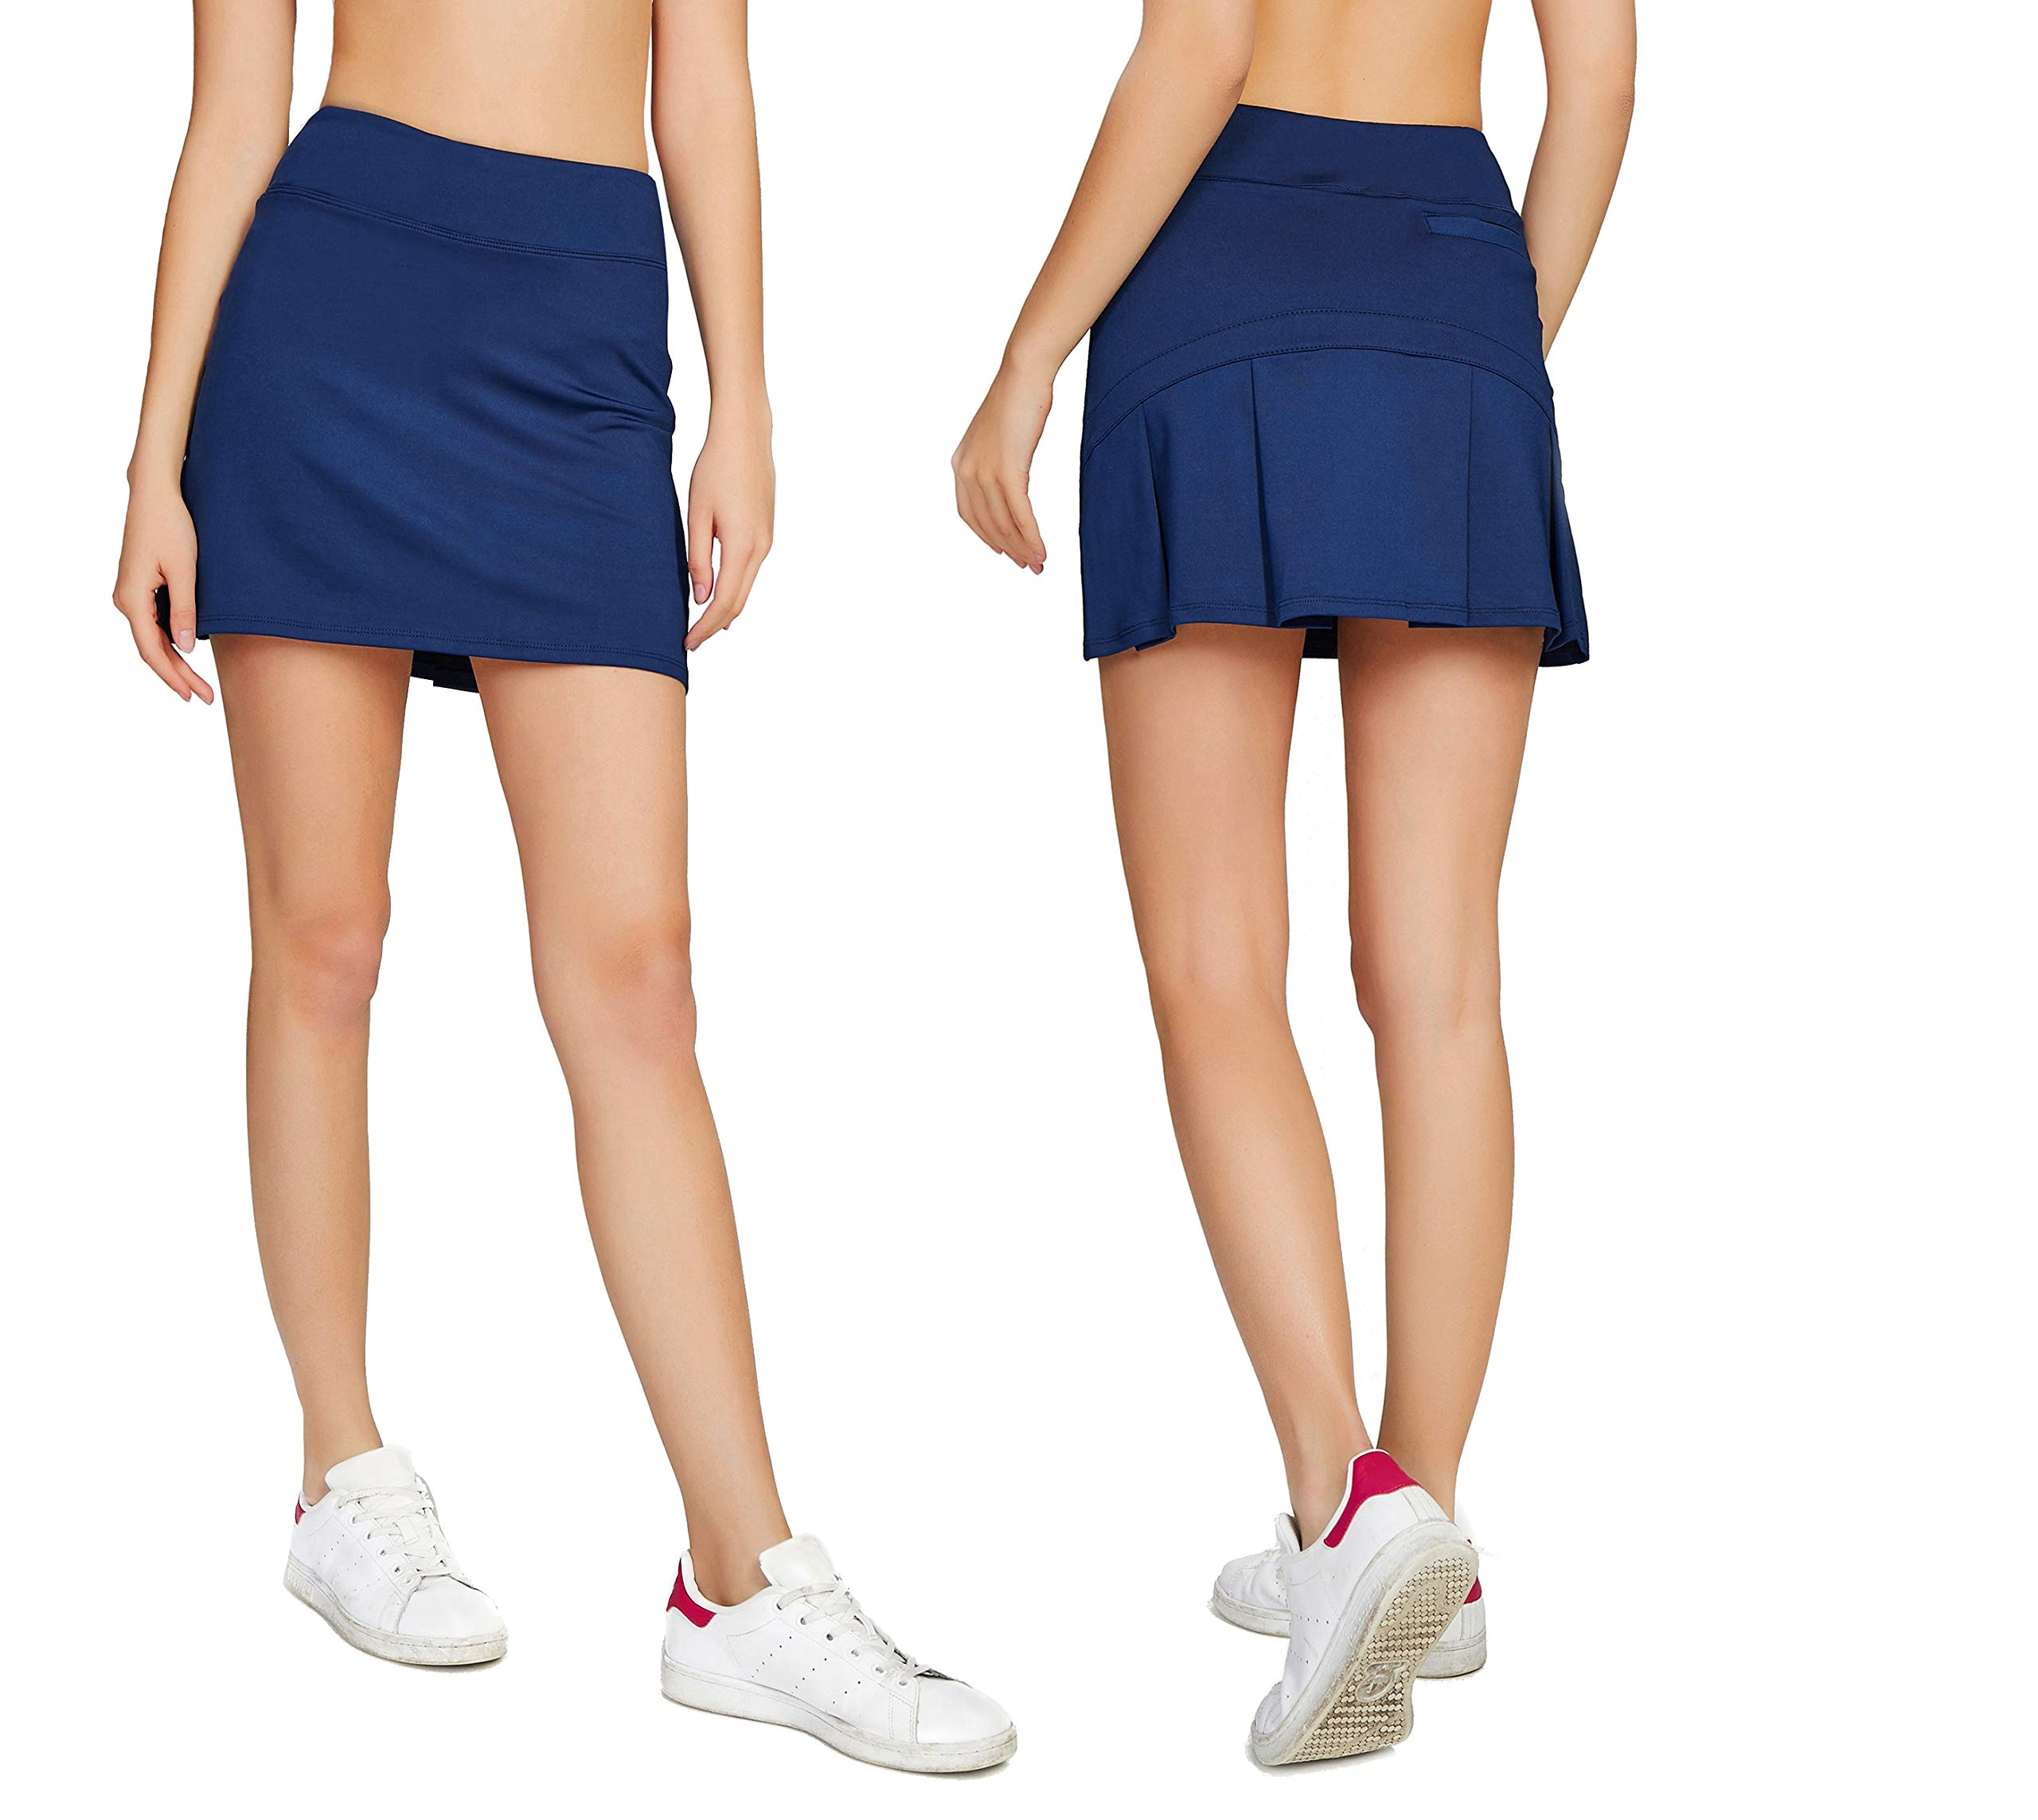 Women's Casual Pleated Tennis Golf Skirt with Underneath Shorts Running Skorts d_bu xs